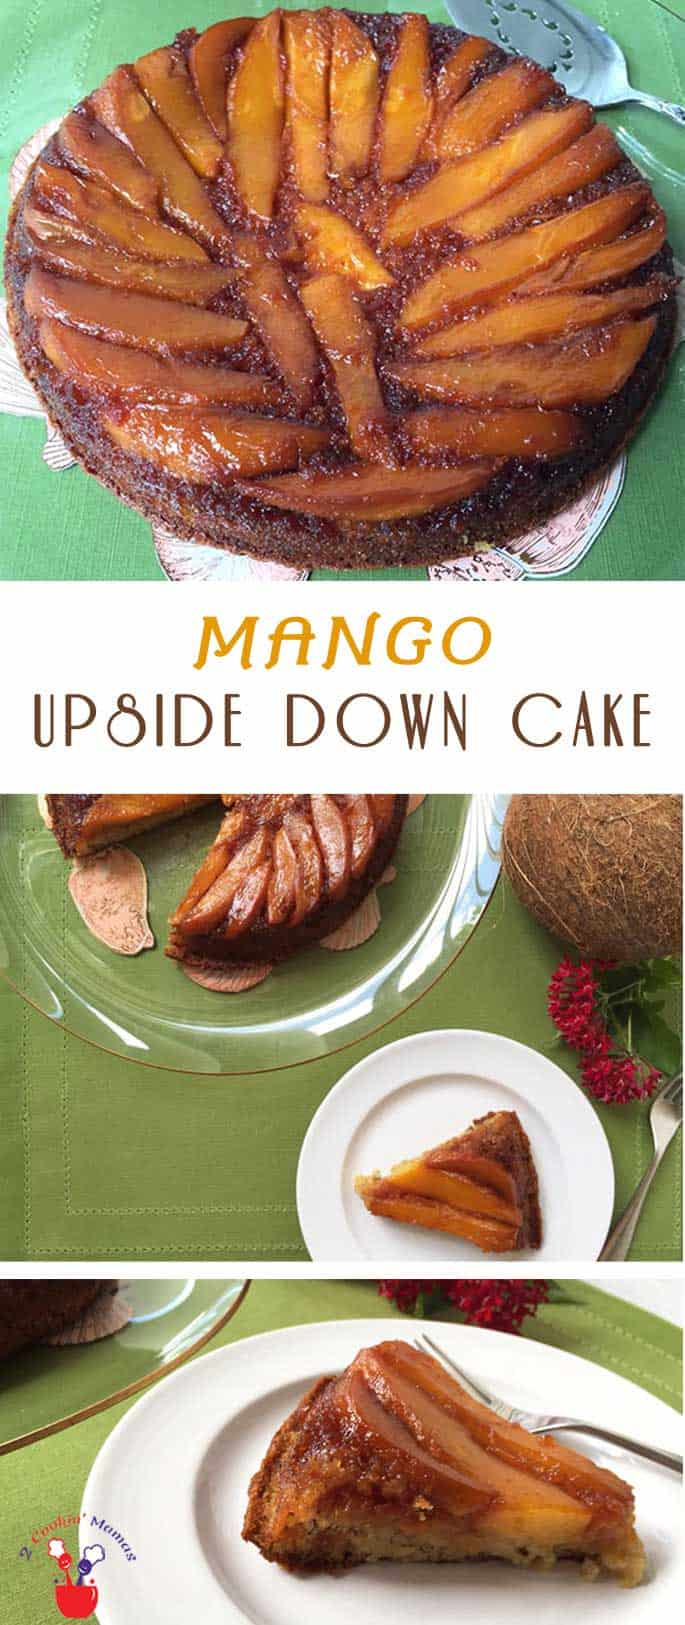 What\'s better than fresh mango? Fresh mango atop a moist & delicious rum cake! Impress guests with this easy & beautiful Mango Upside Down Cake recipe. #dessert #mango #upsidedowncake #cake #rum